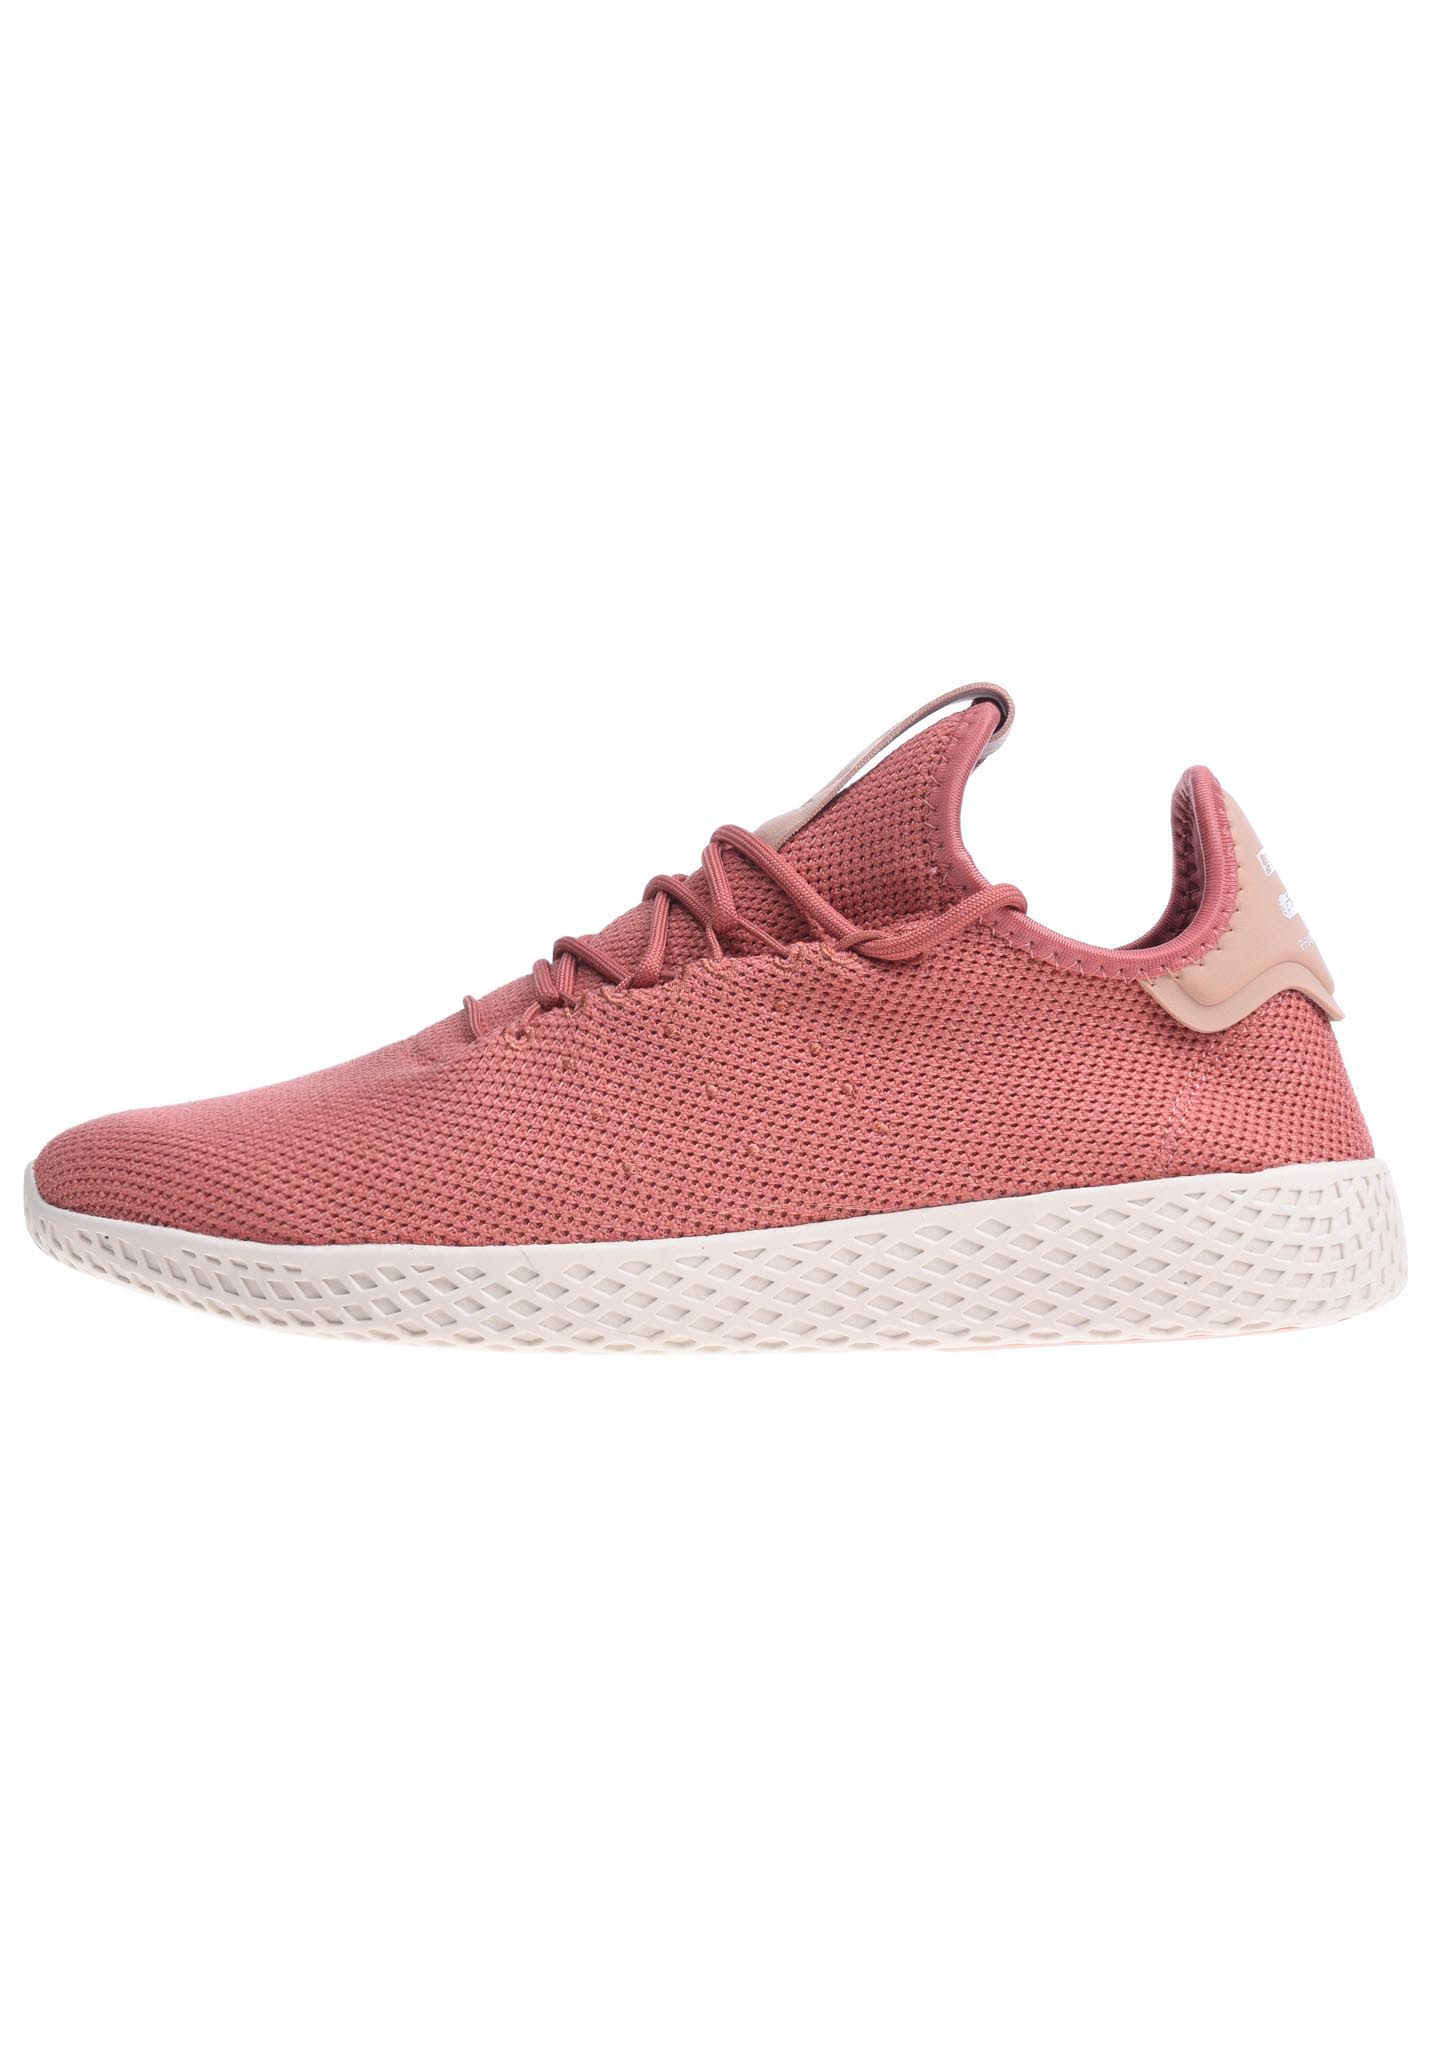 ed938f979 ADIDAS ORIGINALS Pharrell Williams Tennis Hu - Sneakers for Women - Pink -  Planet Sports